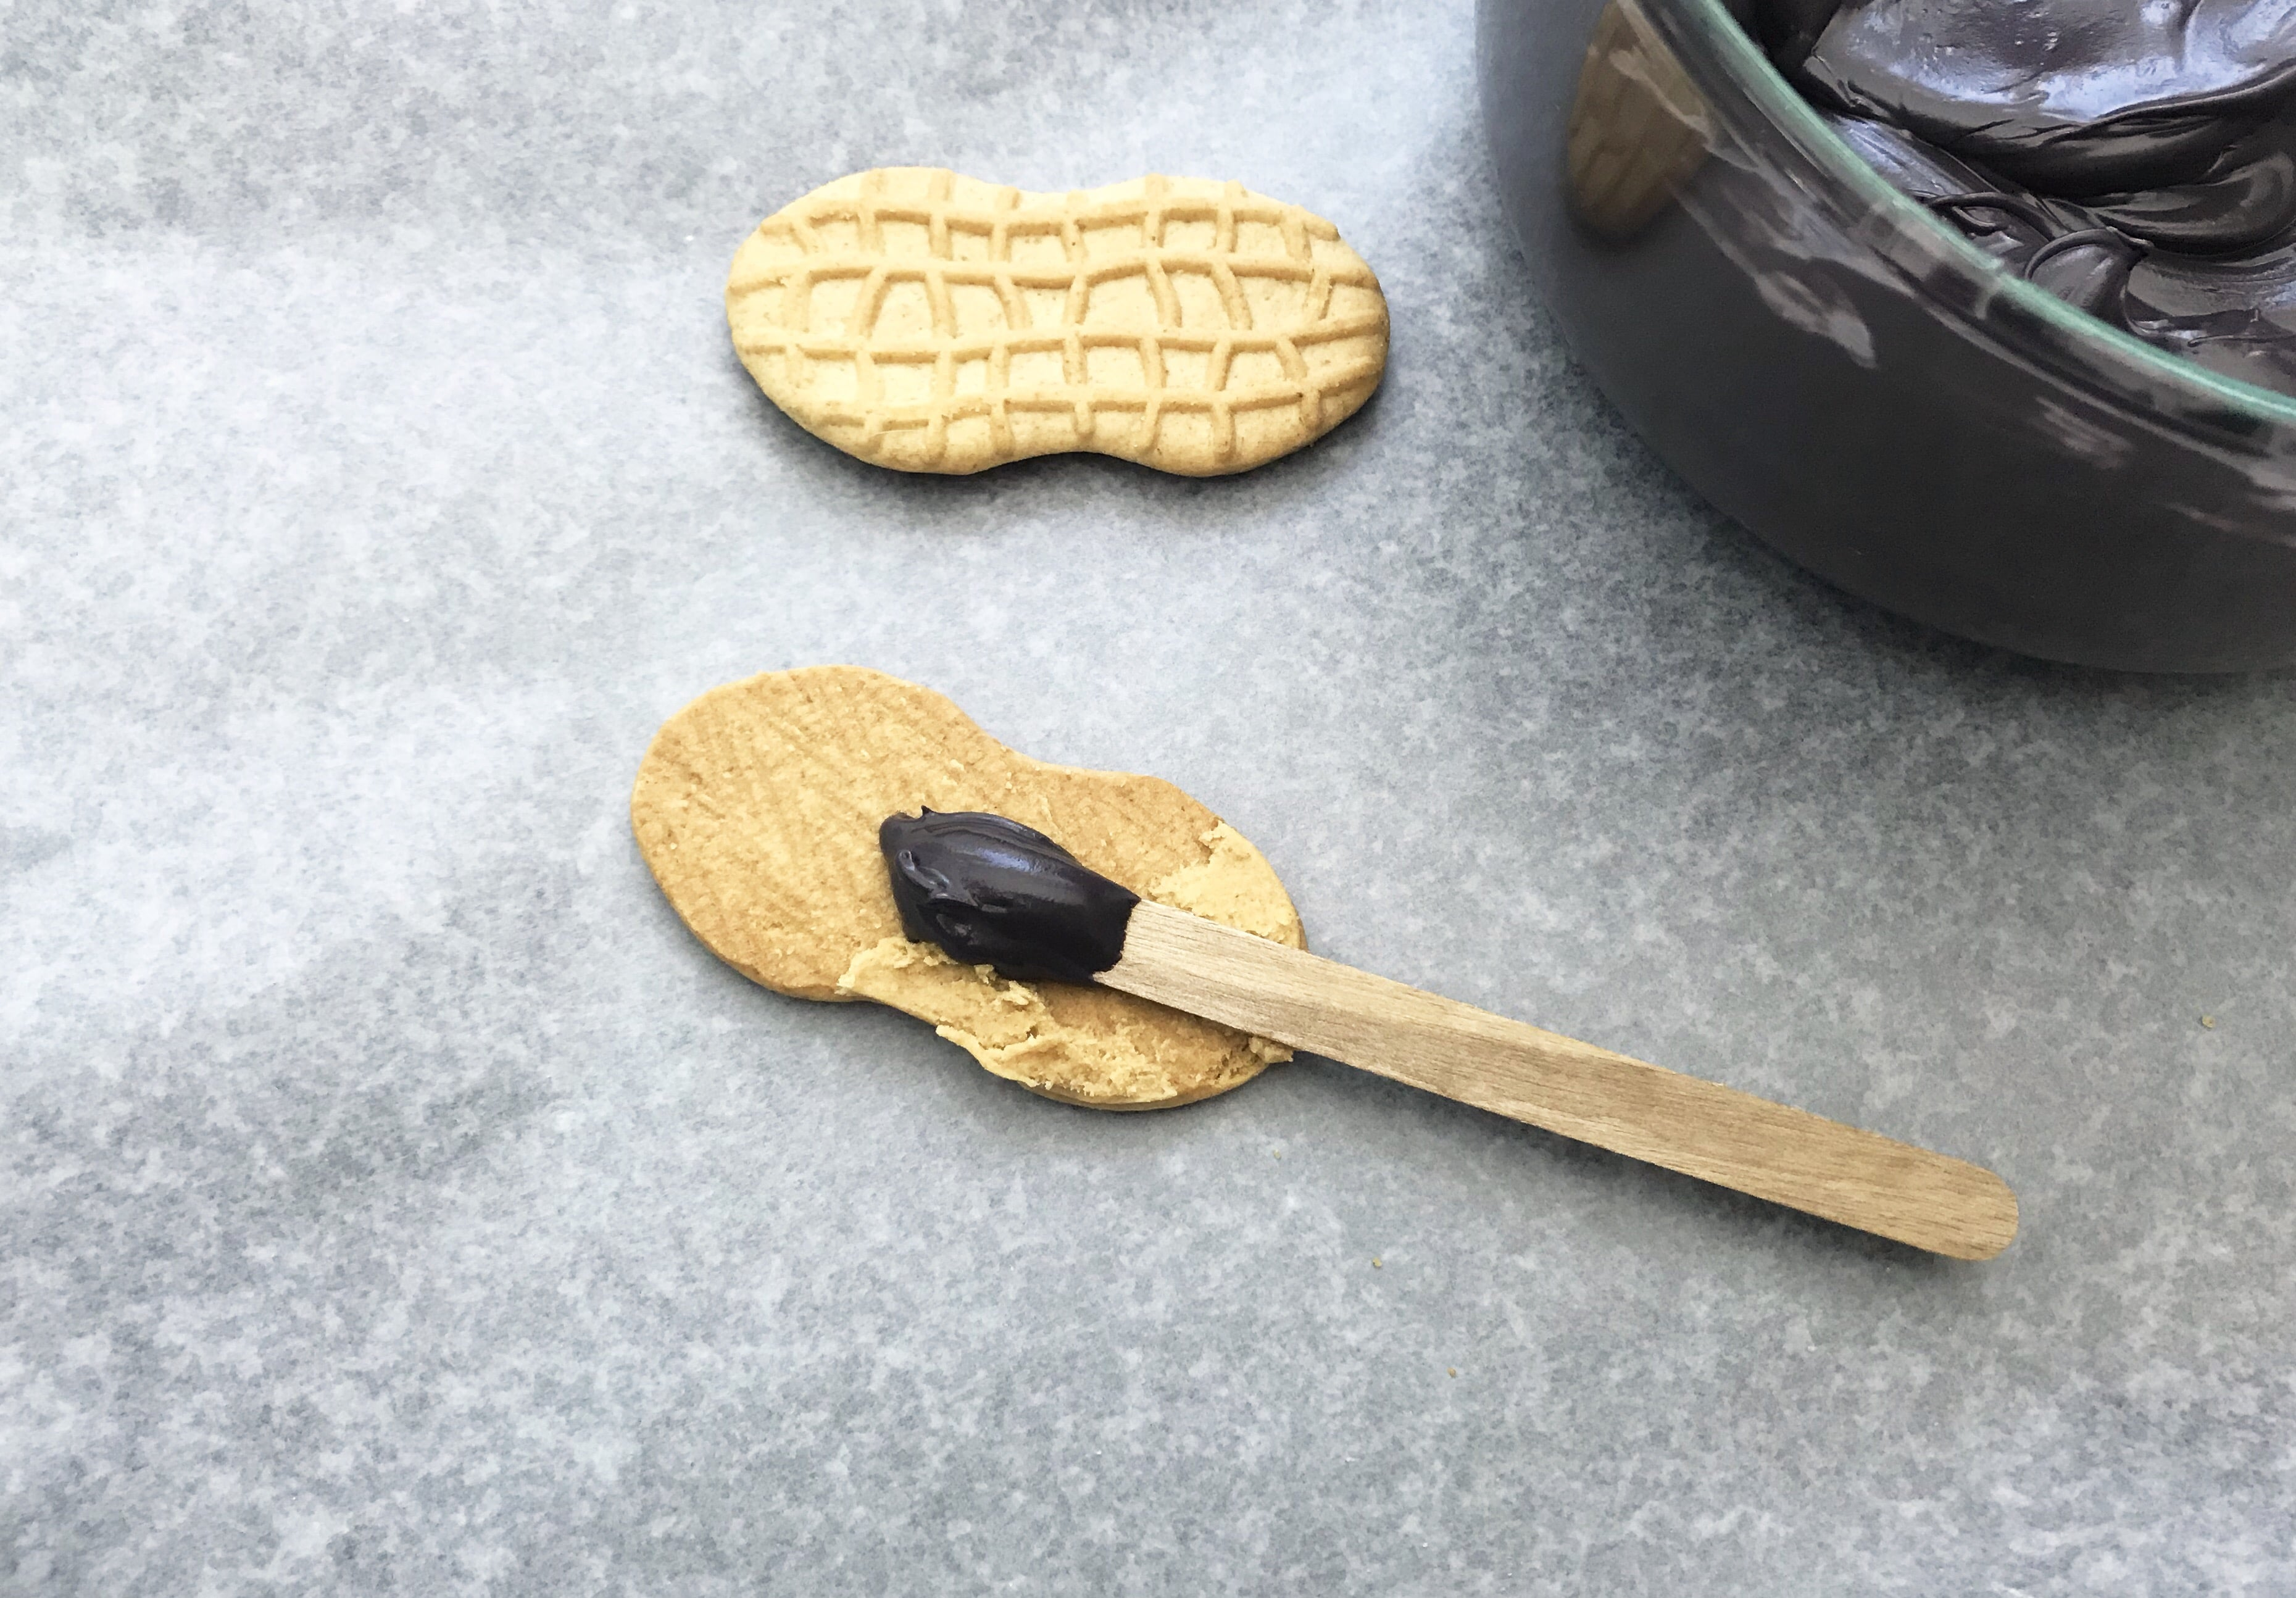 Icing on a popsicle stick being placed on a nutter butter cookie on a grey background